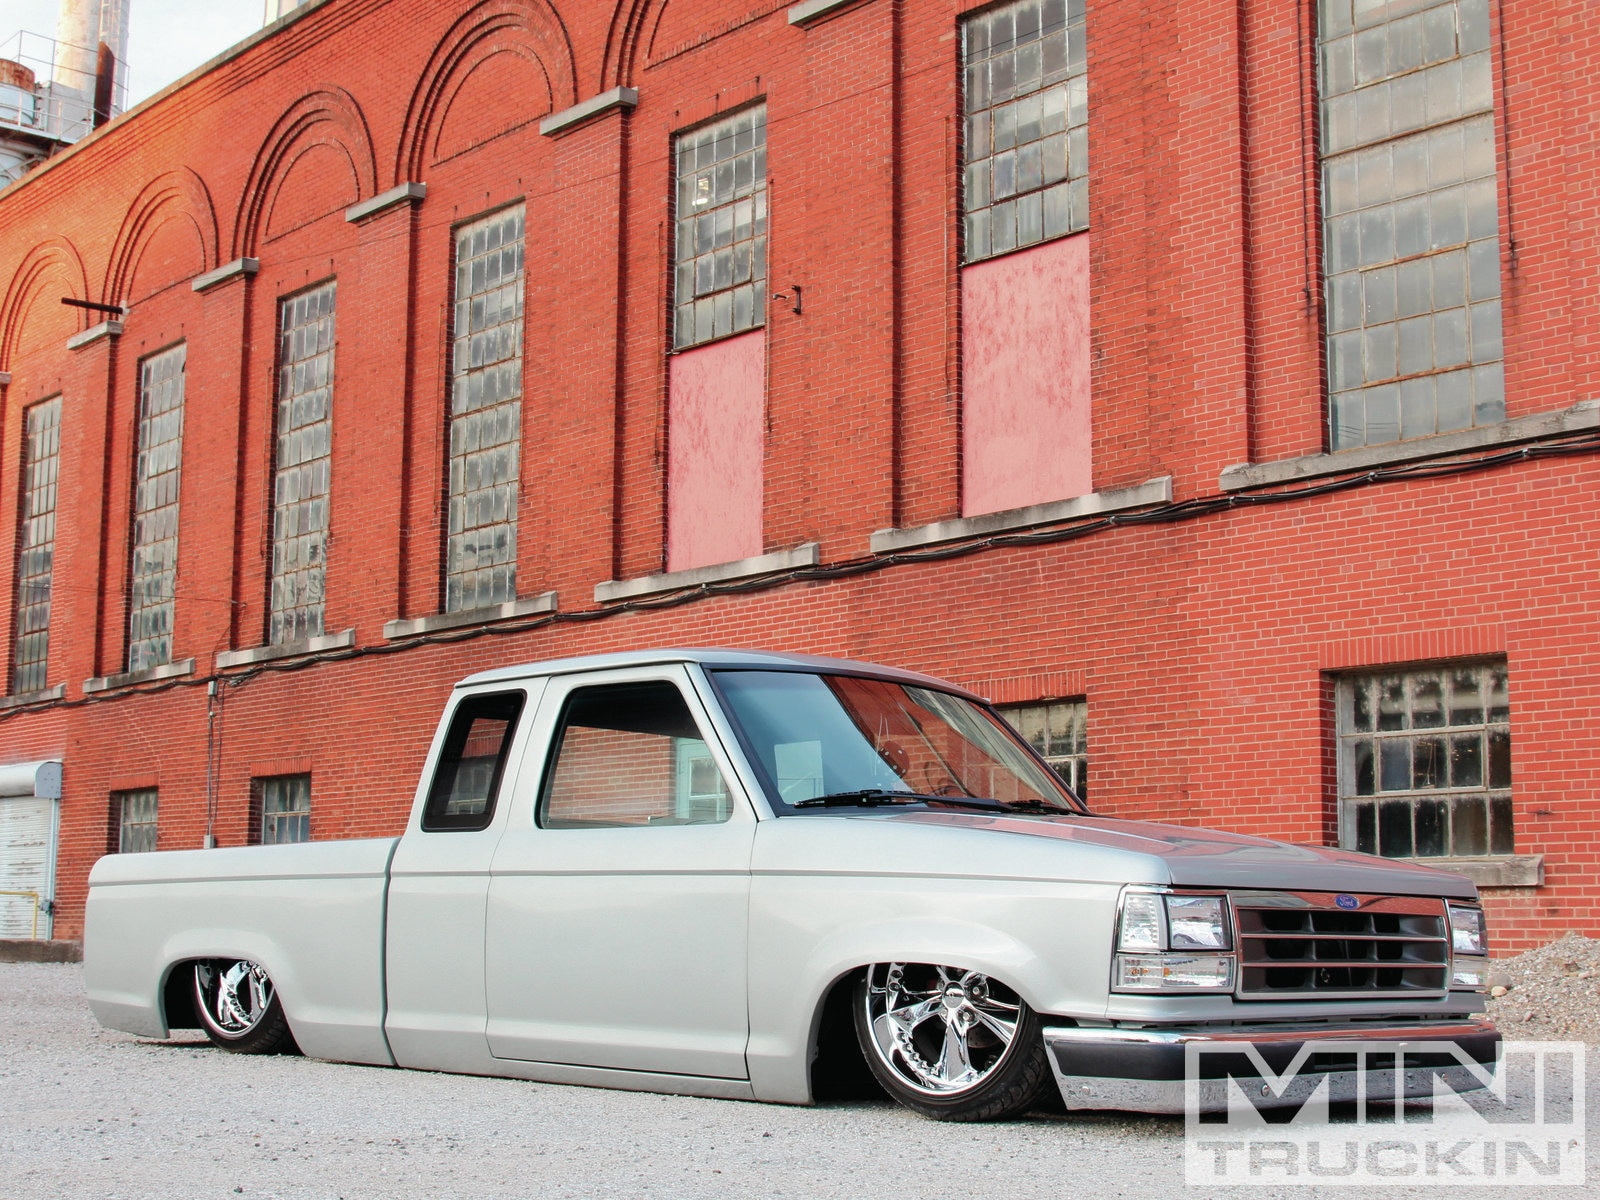 1992 Ford Ranger foose Nitrous Wheels